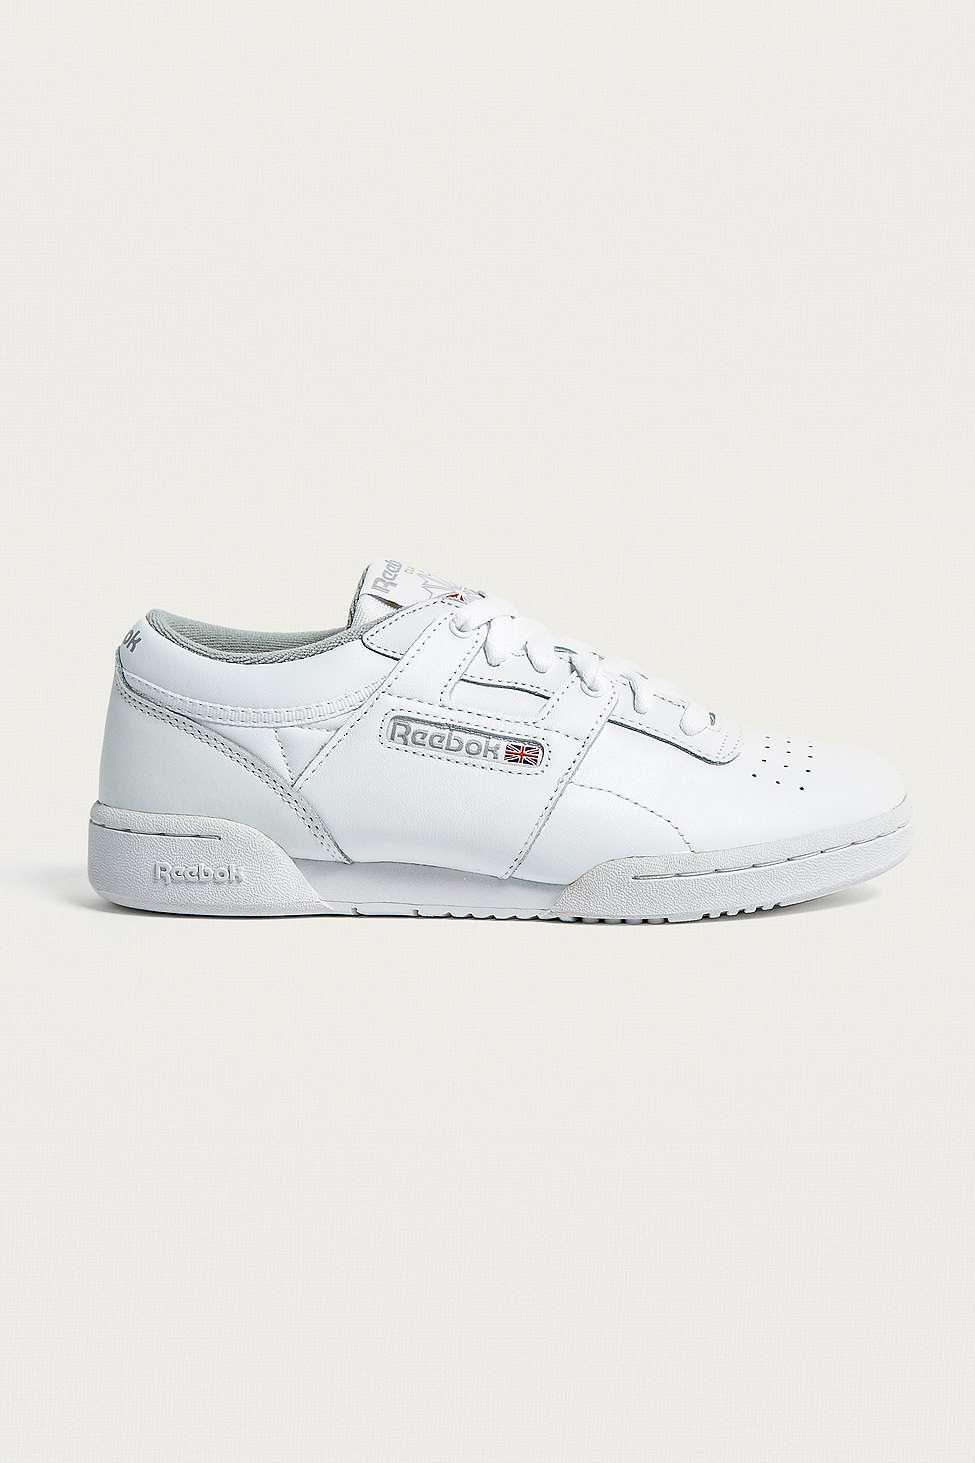 e333f7a8a7f Reebok Workout Lo White Trainers - Womens Uk 6 in White - Lyst